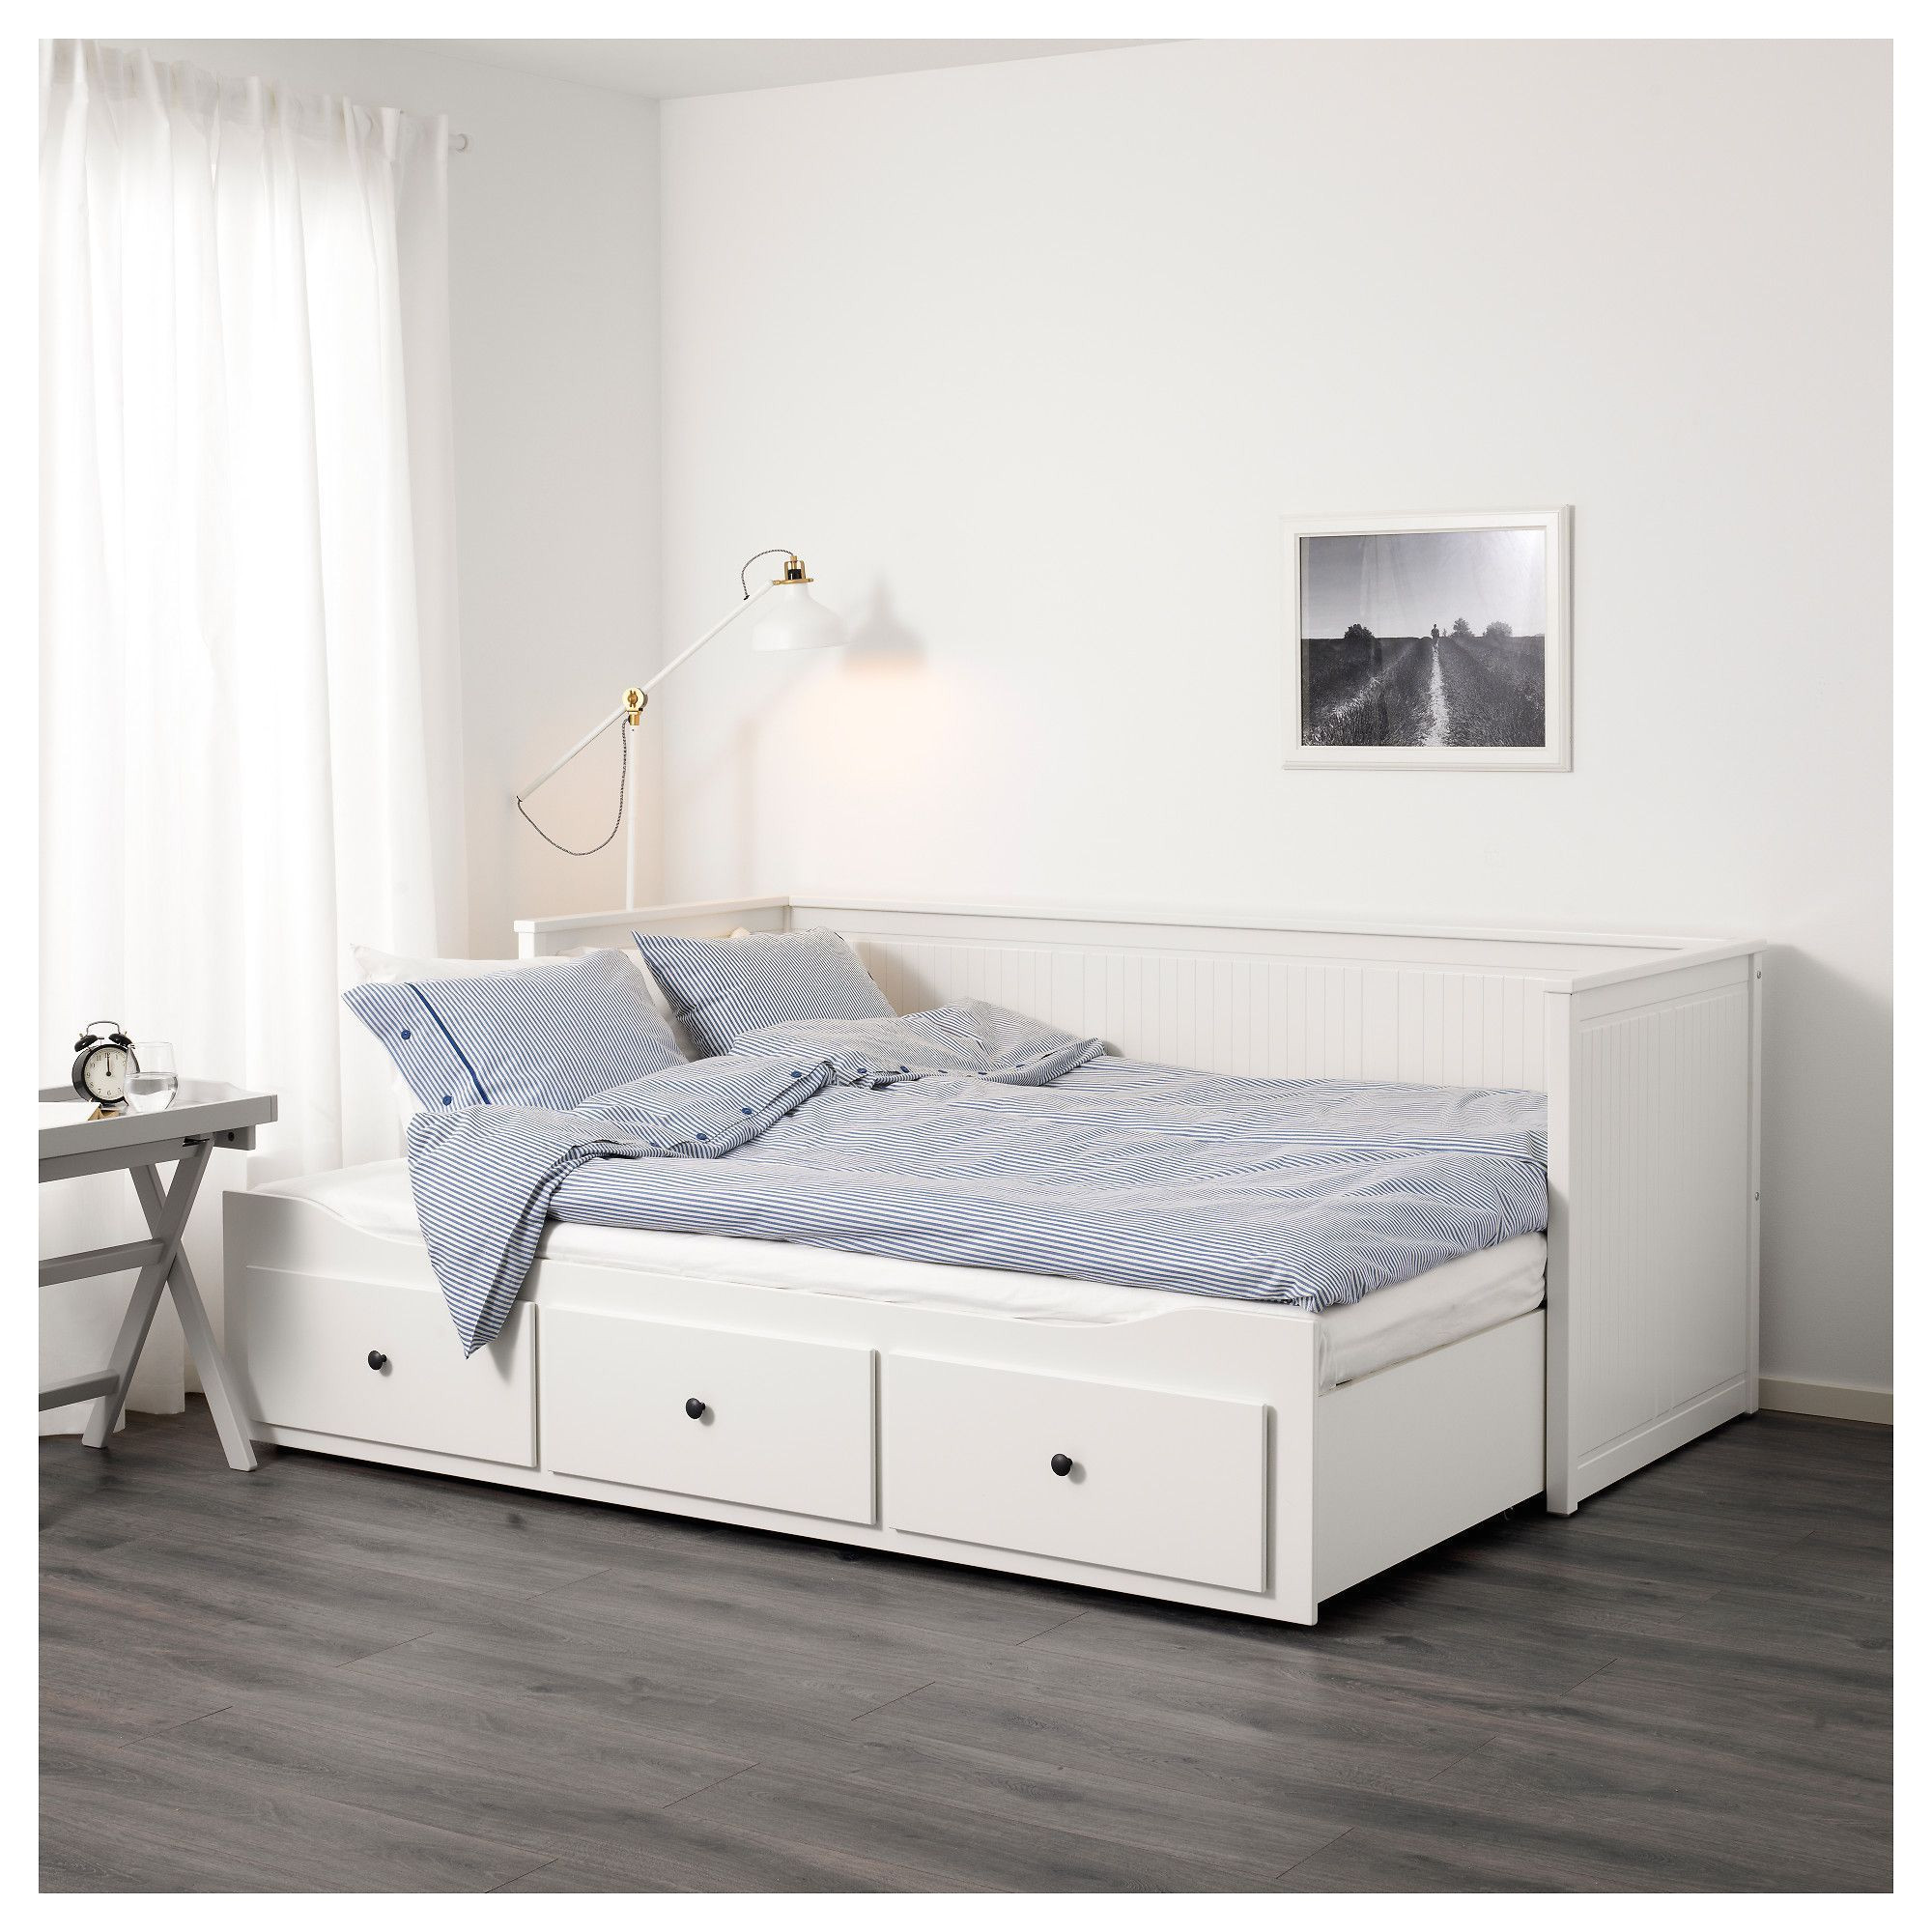 Ikea Hemnes Daybed With 3 Drawers Assembly Instructions